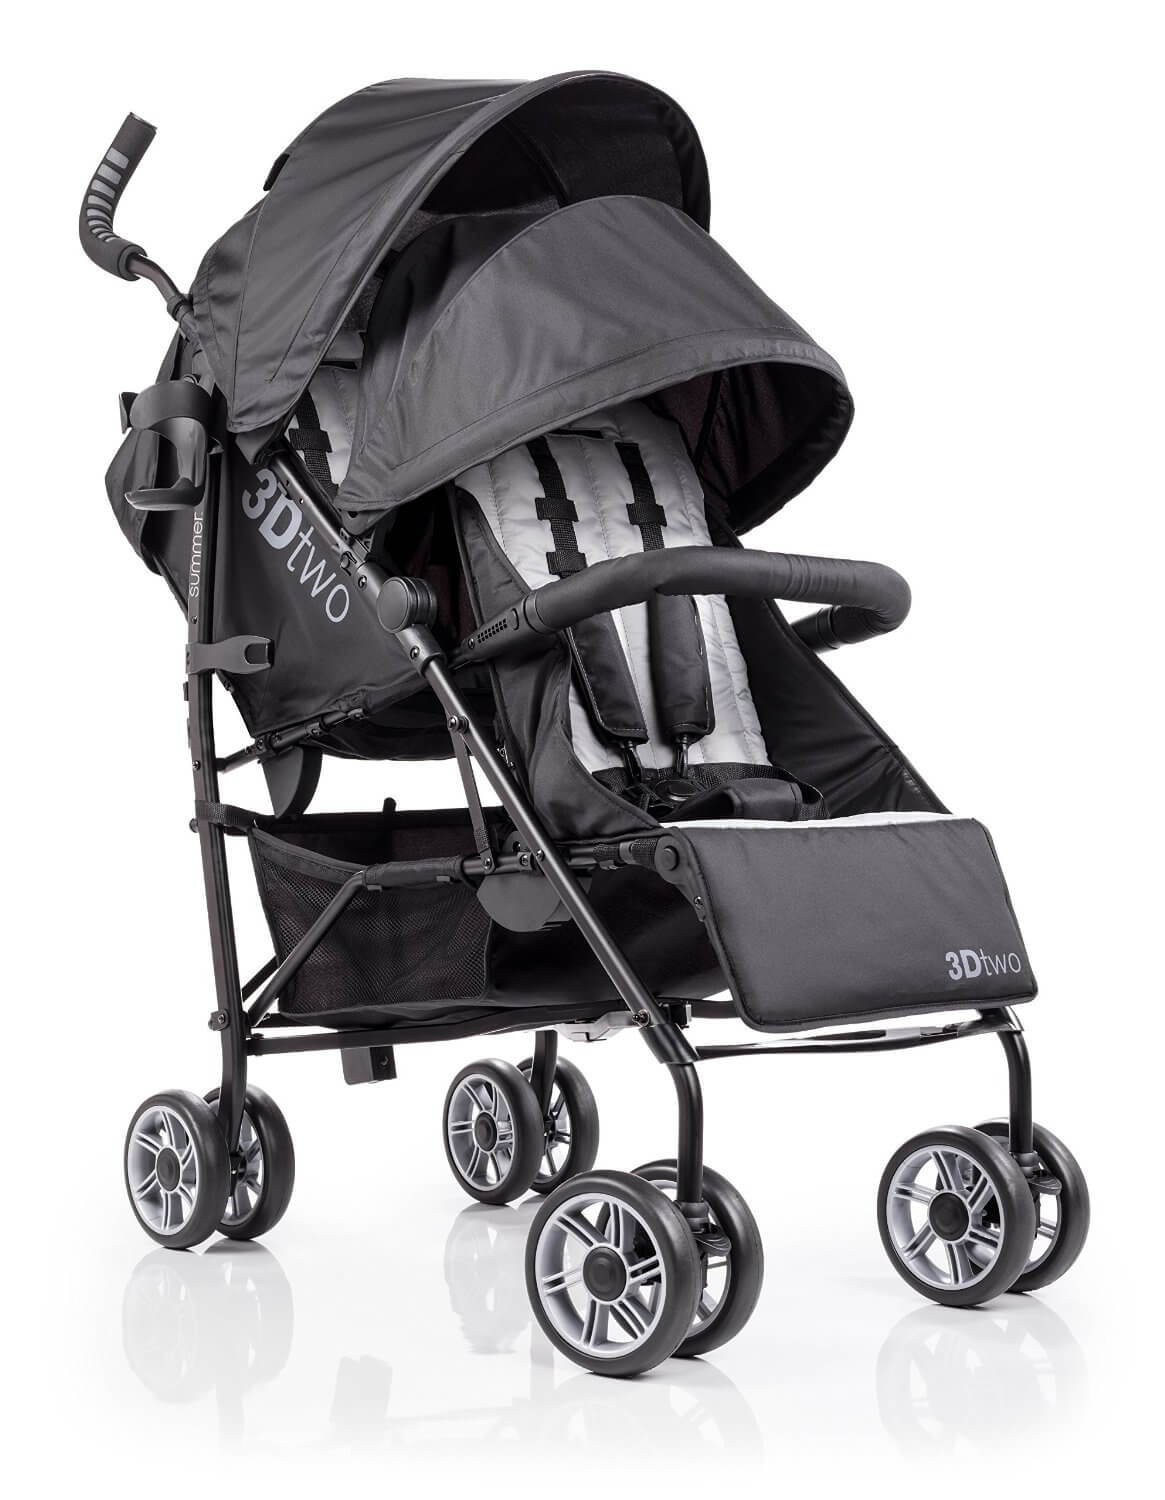 Summer Infant 3D Two Double Convenience Stroller Review - best summer infant stroller